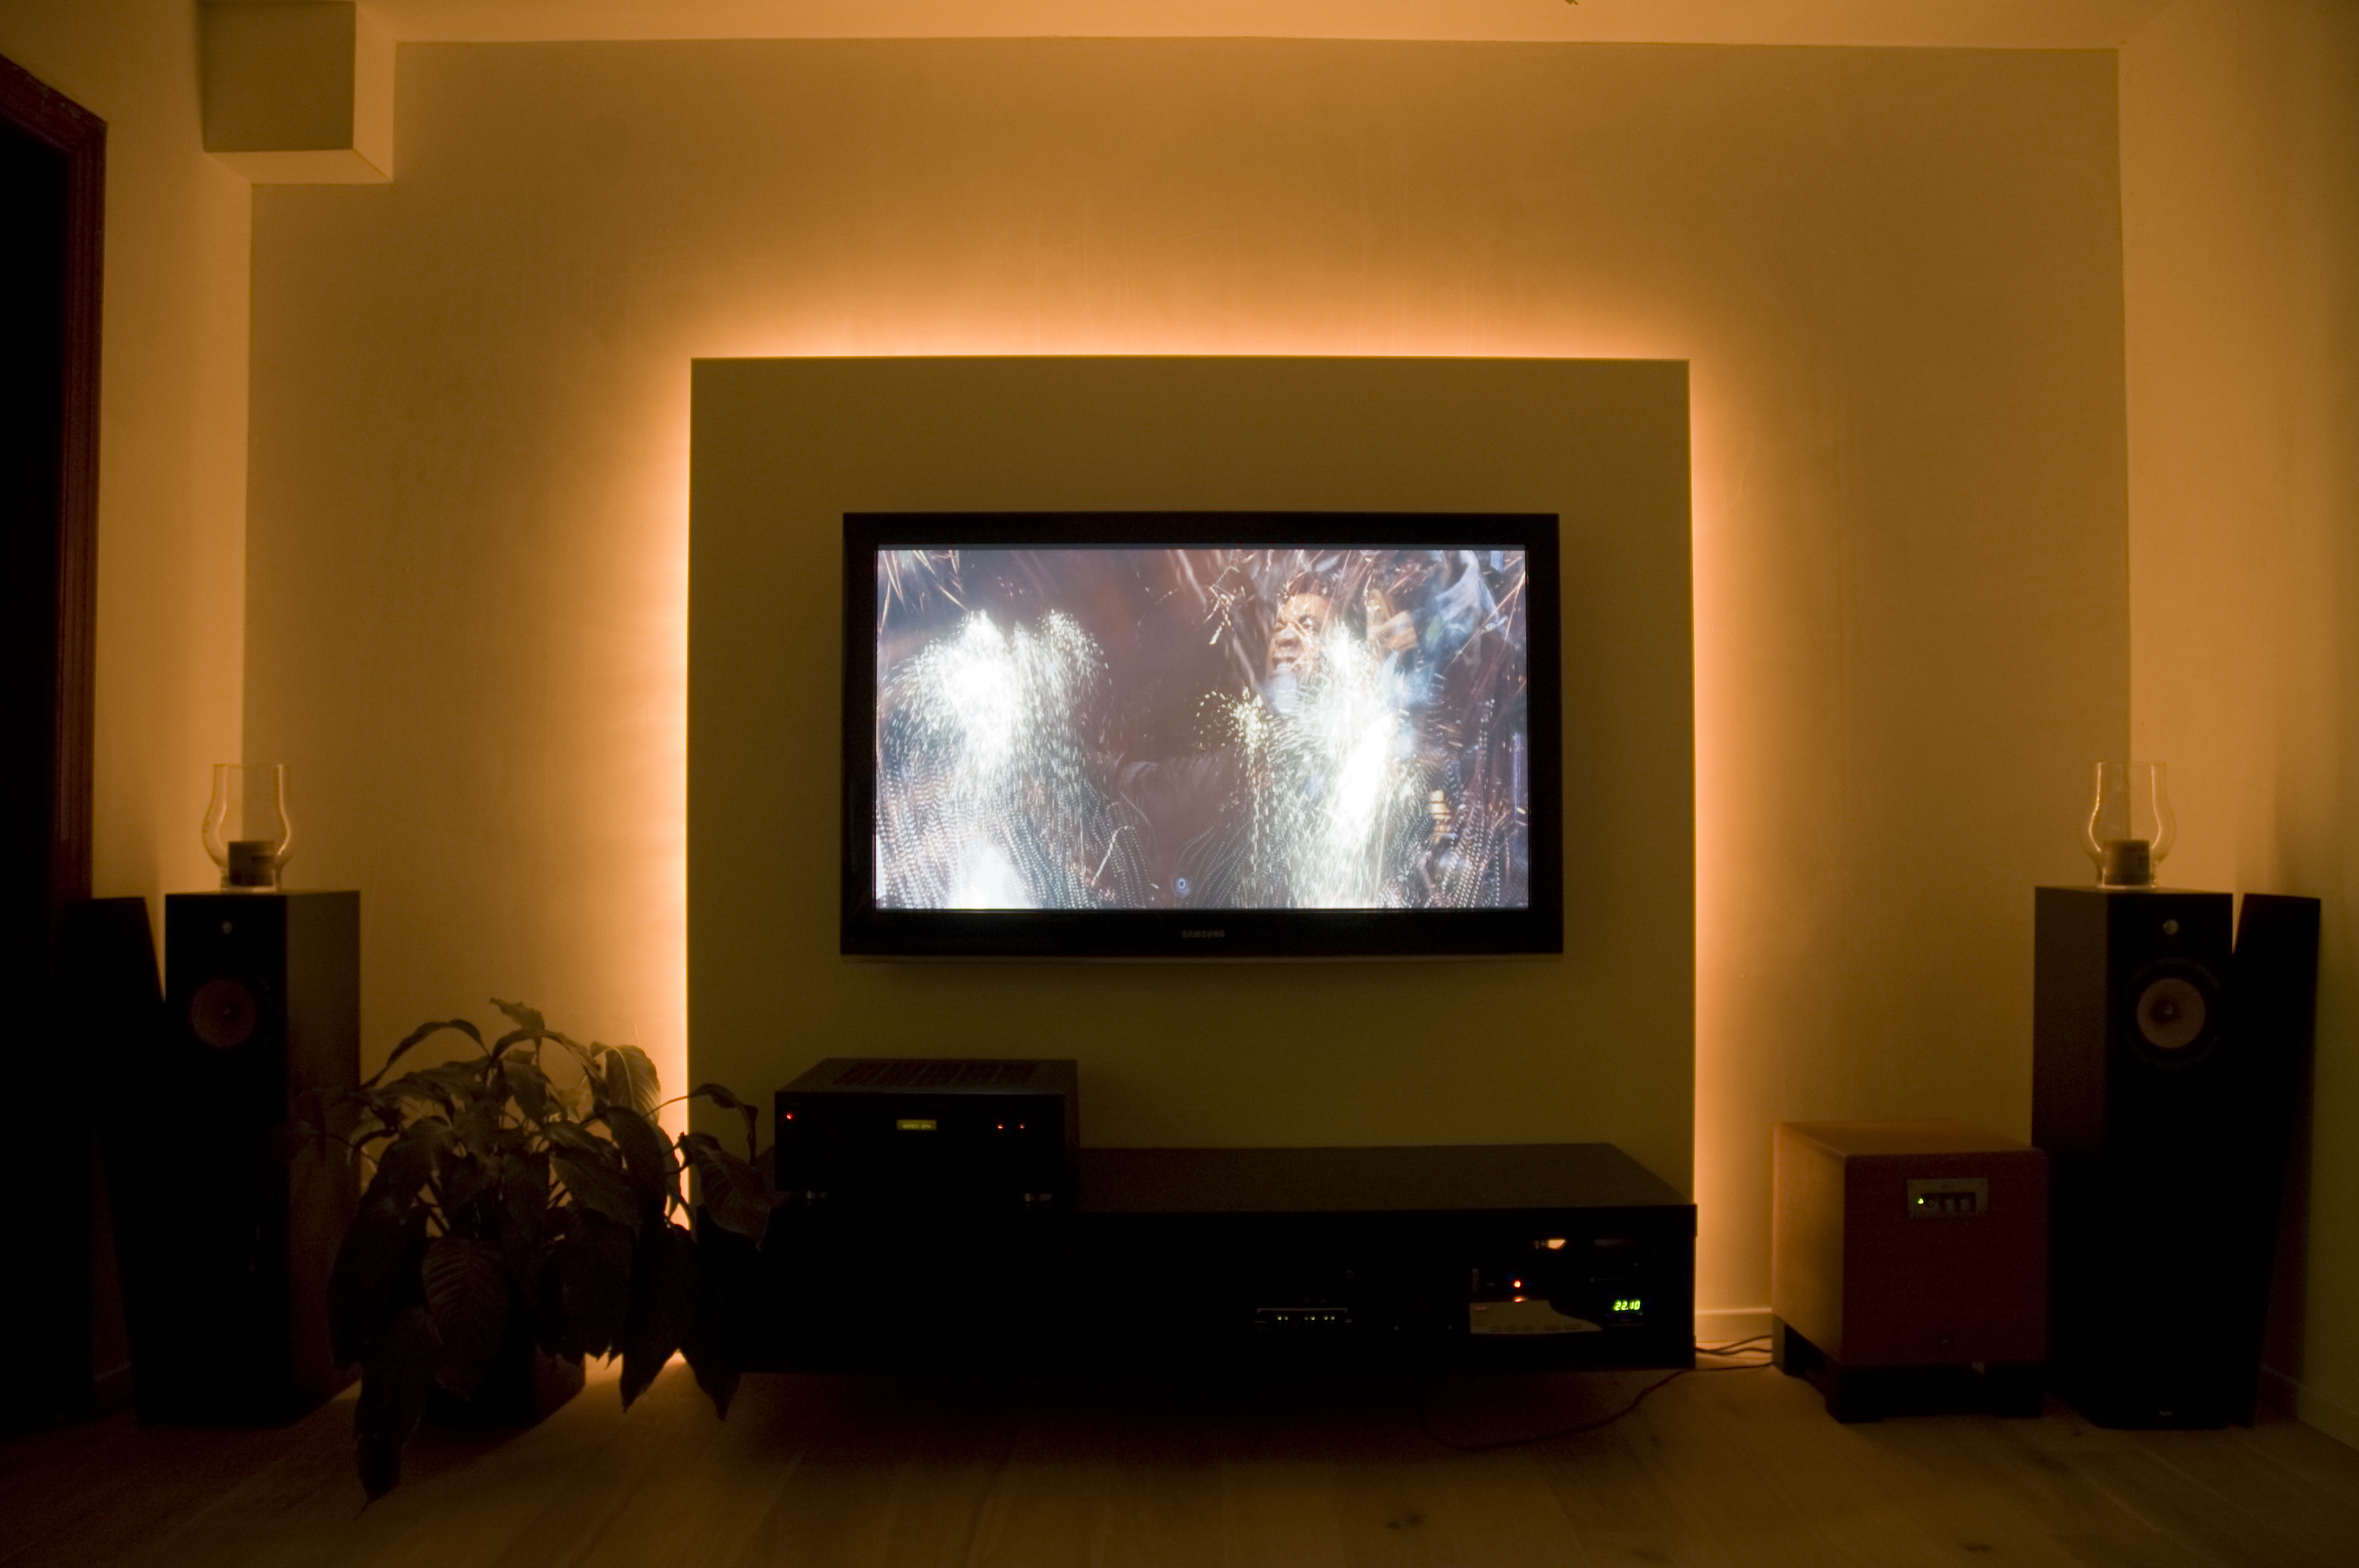 Lamp Achter Tv. Elegant More Than Million Samsung Tvs Plagued By ...